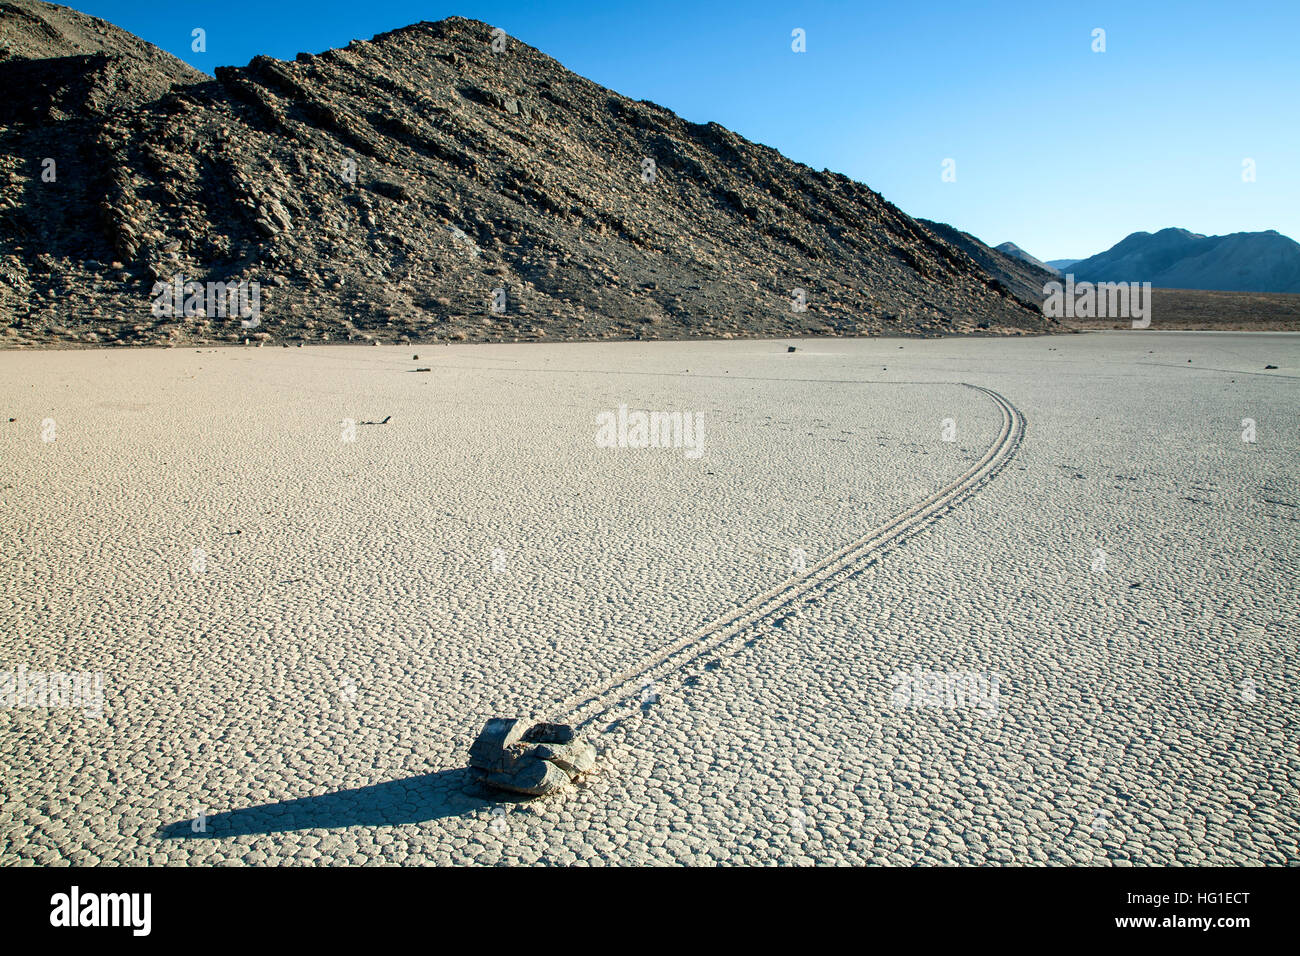 Rock und Track, The Racetrack, Death Valley Nationalpark, Kalifornien USA Stockbild